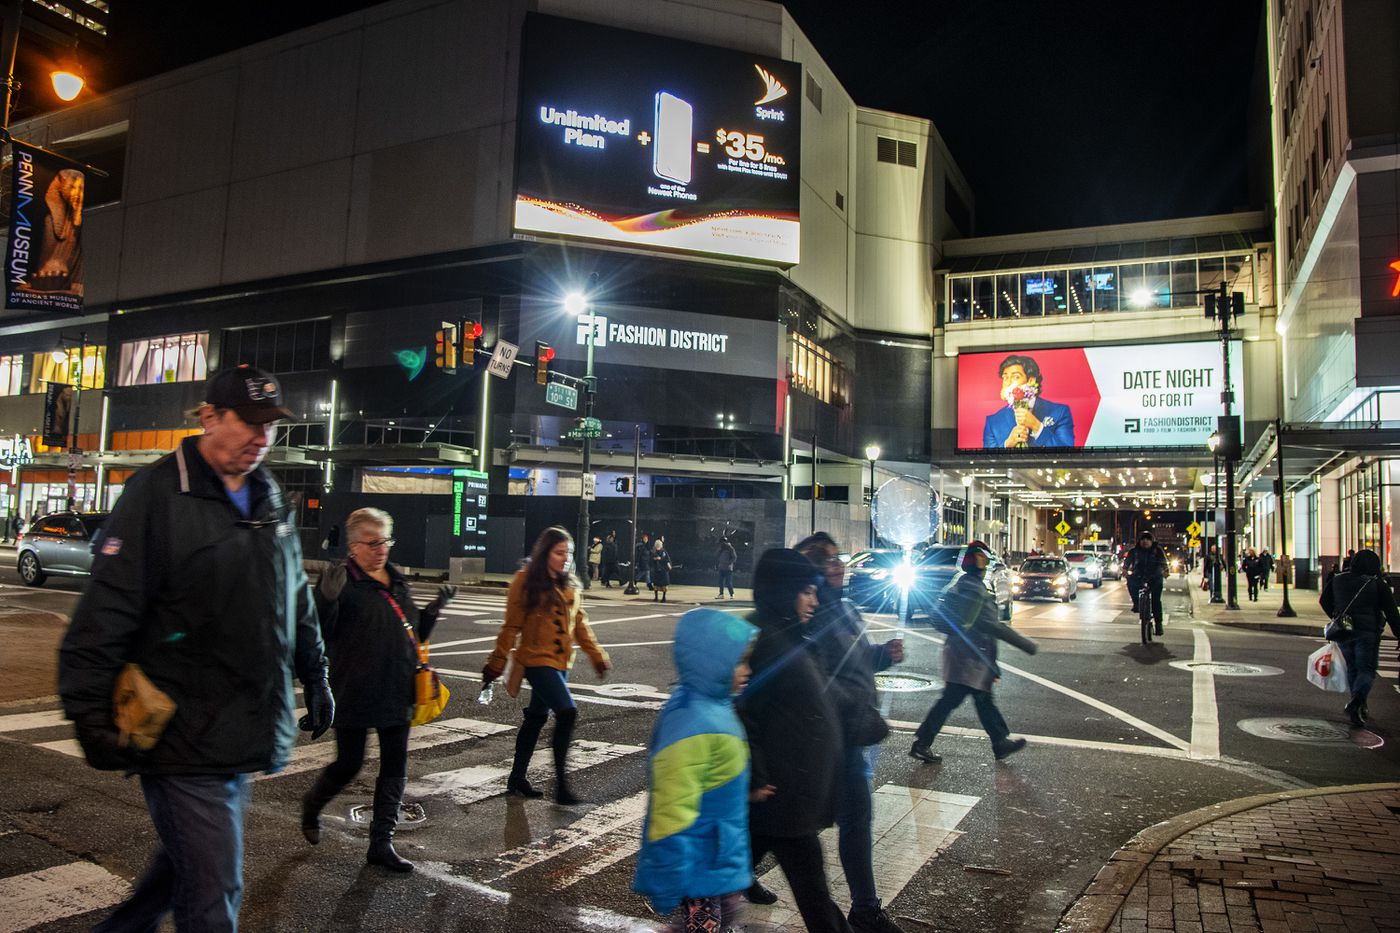 With the opening of the Fashion District, East Market is now a continuous lineup of digital billboards.